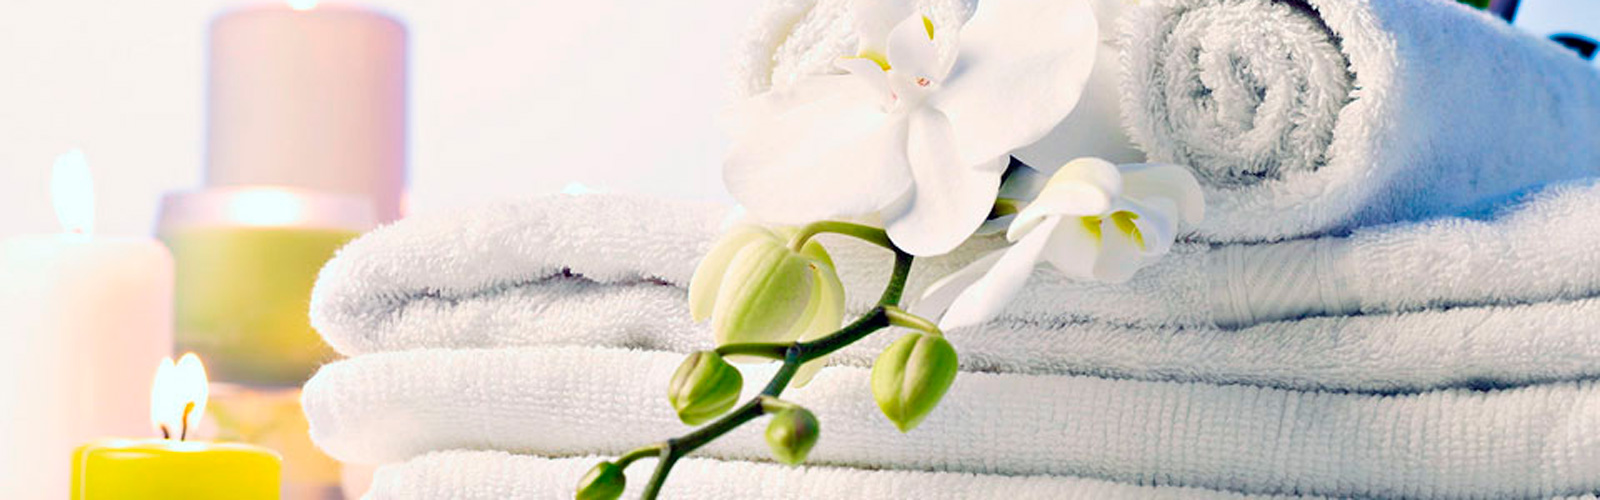 Sparenity Spa Laundry Cleaning Products